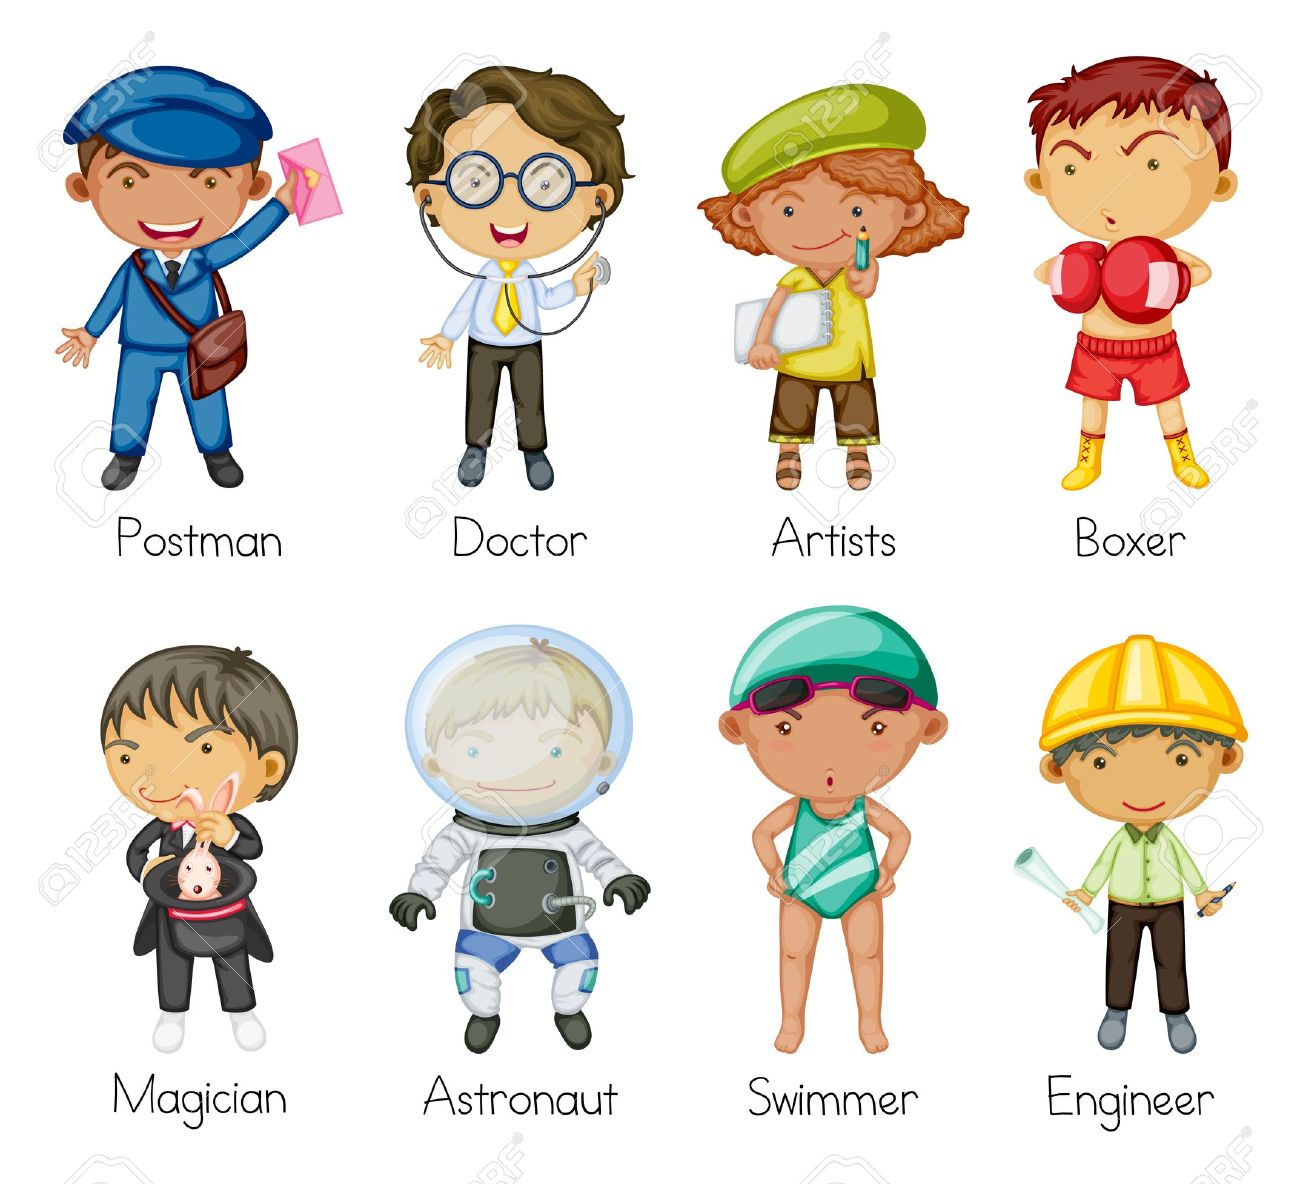 Career pictures for kids. Careers clipart kid